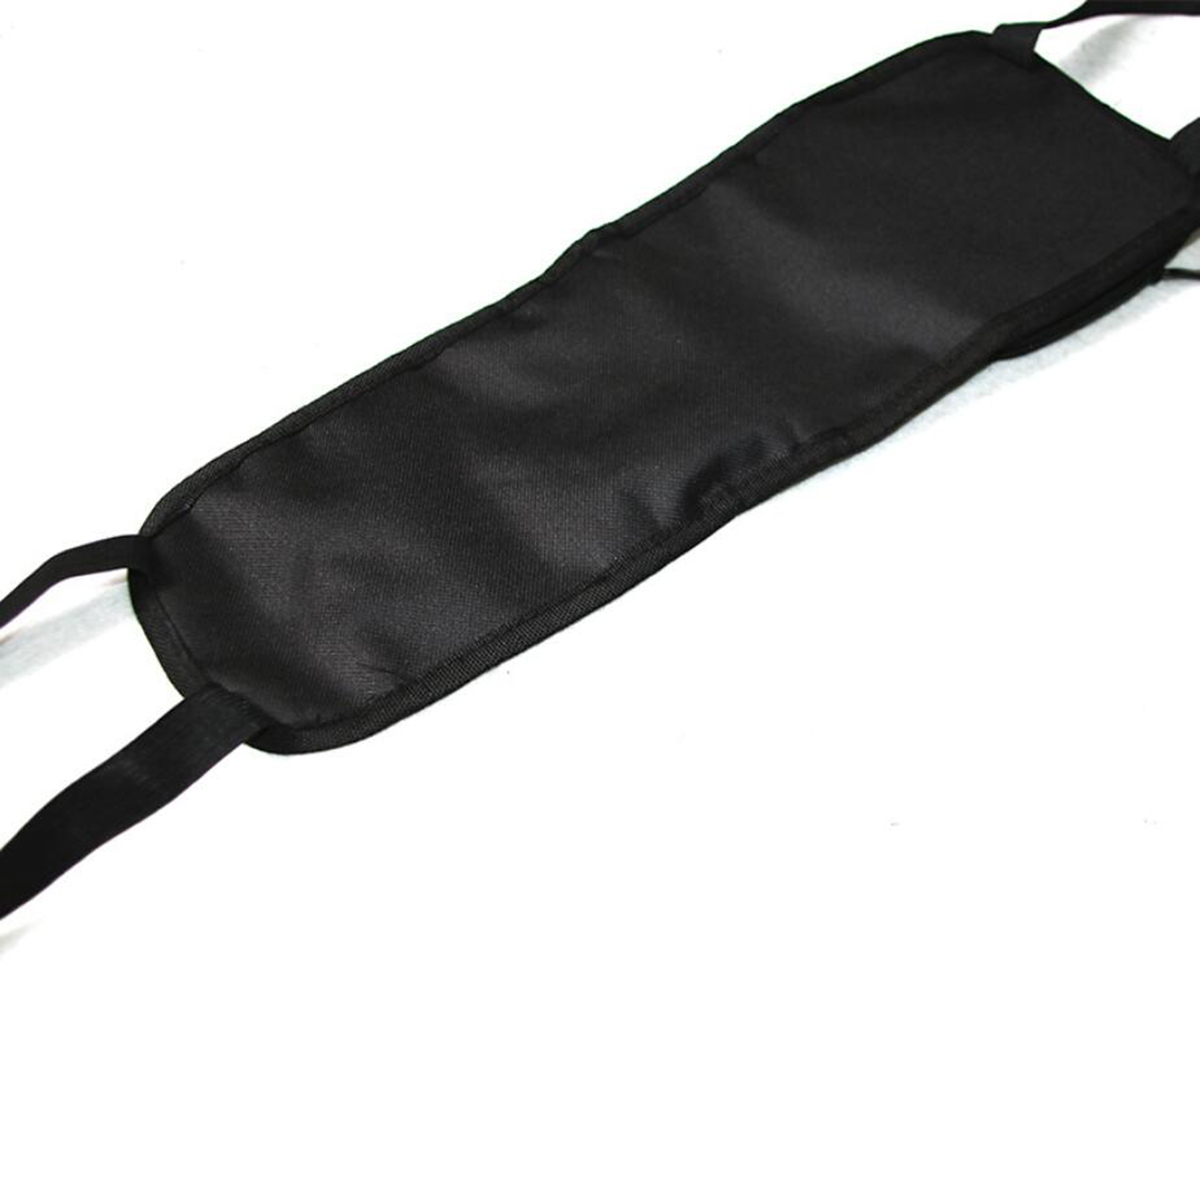 Seat Side Organizer for Use on Any Front Passenger Car Seats ESG12885